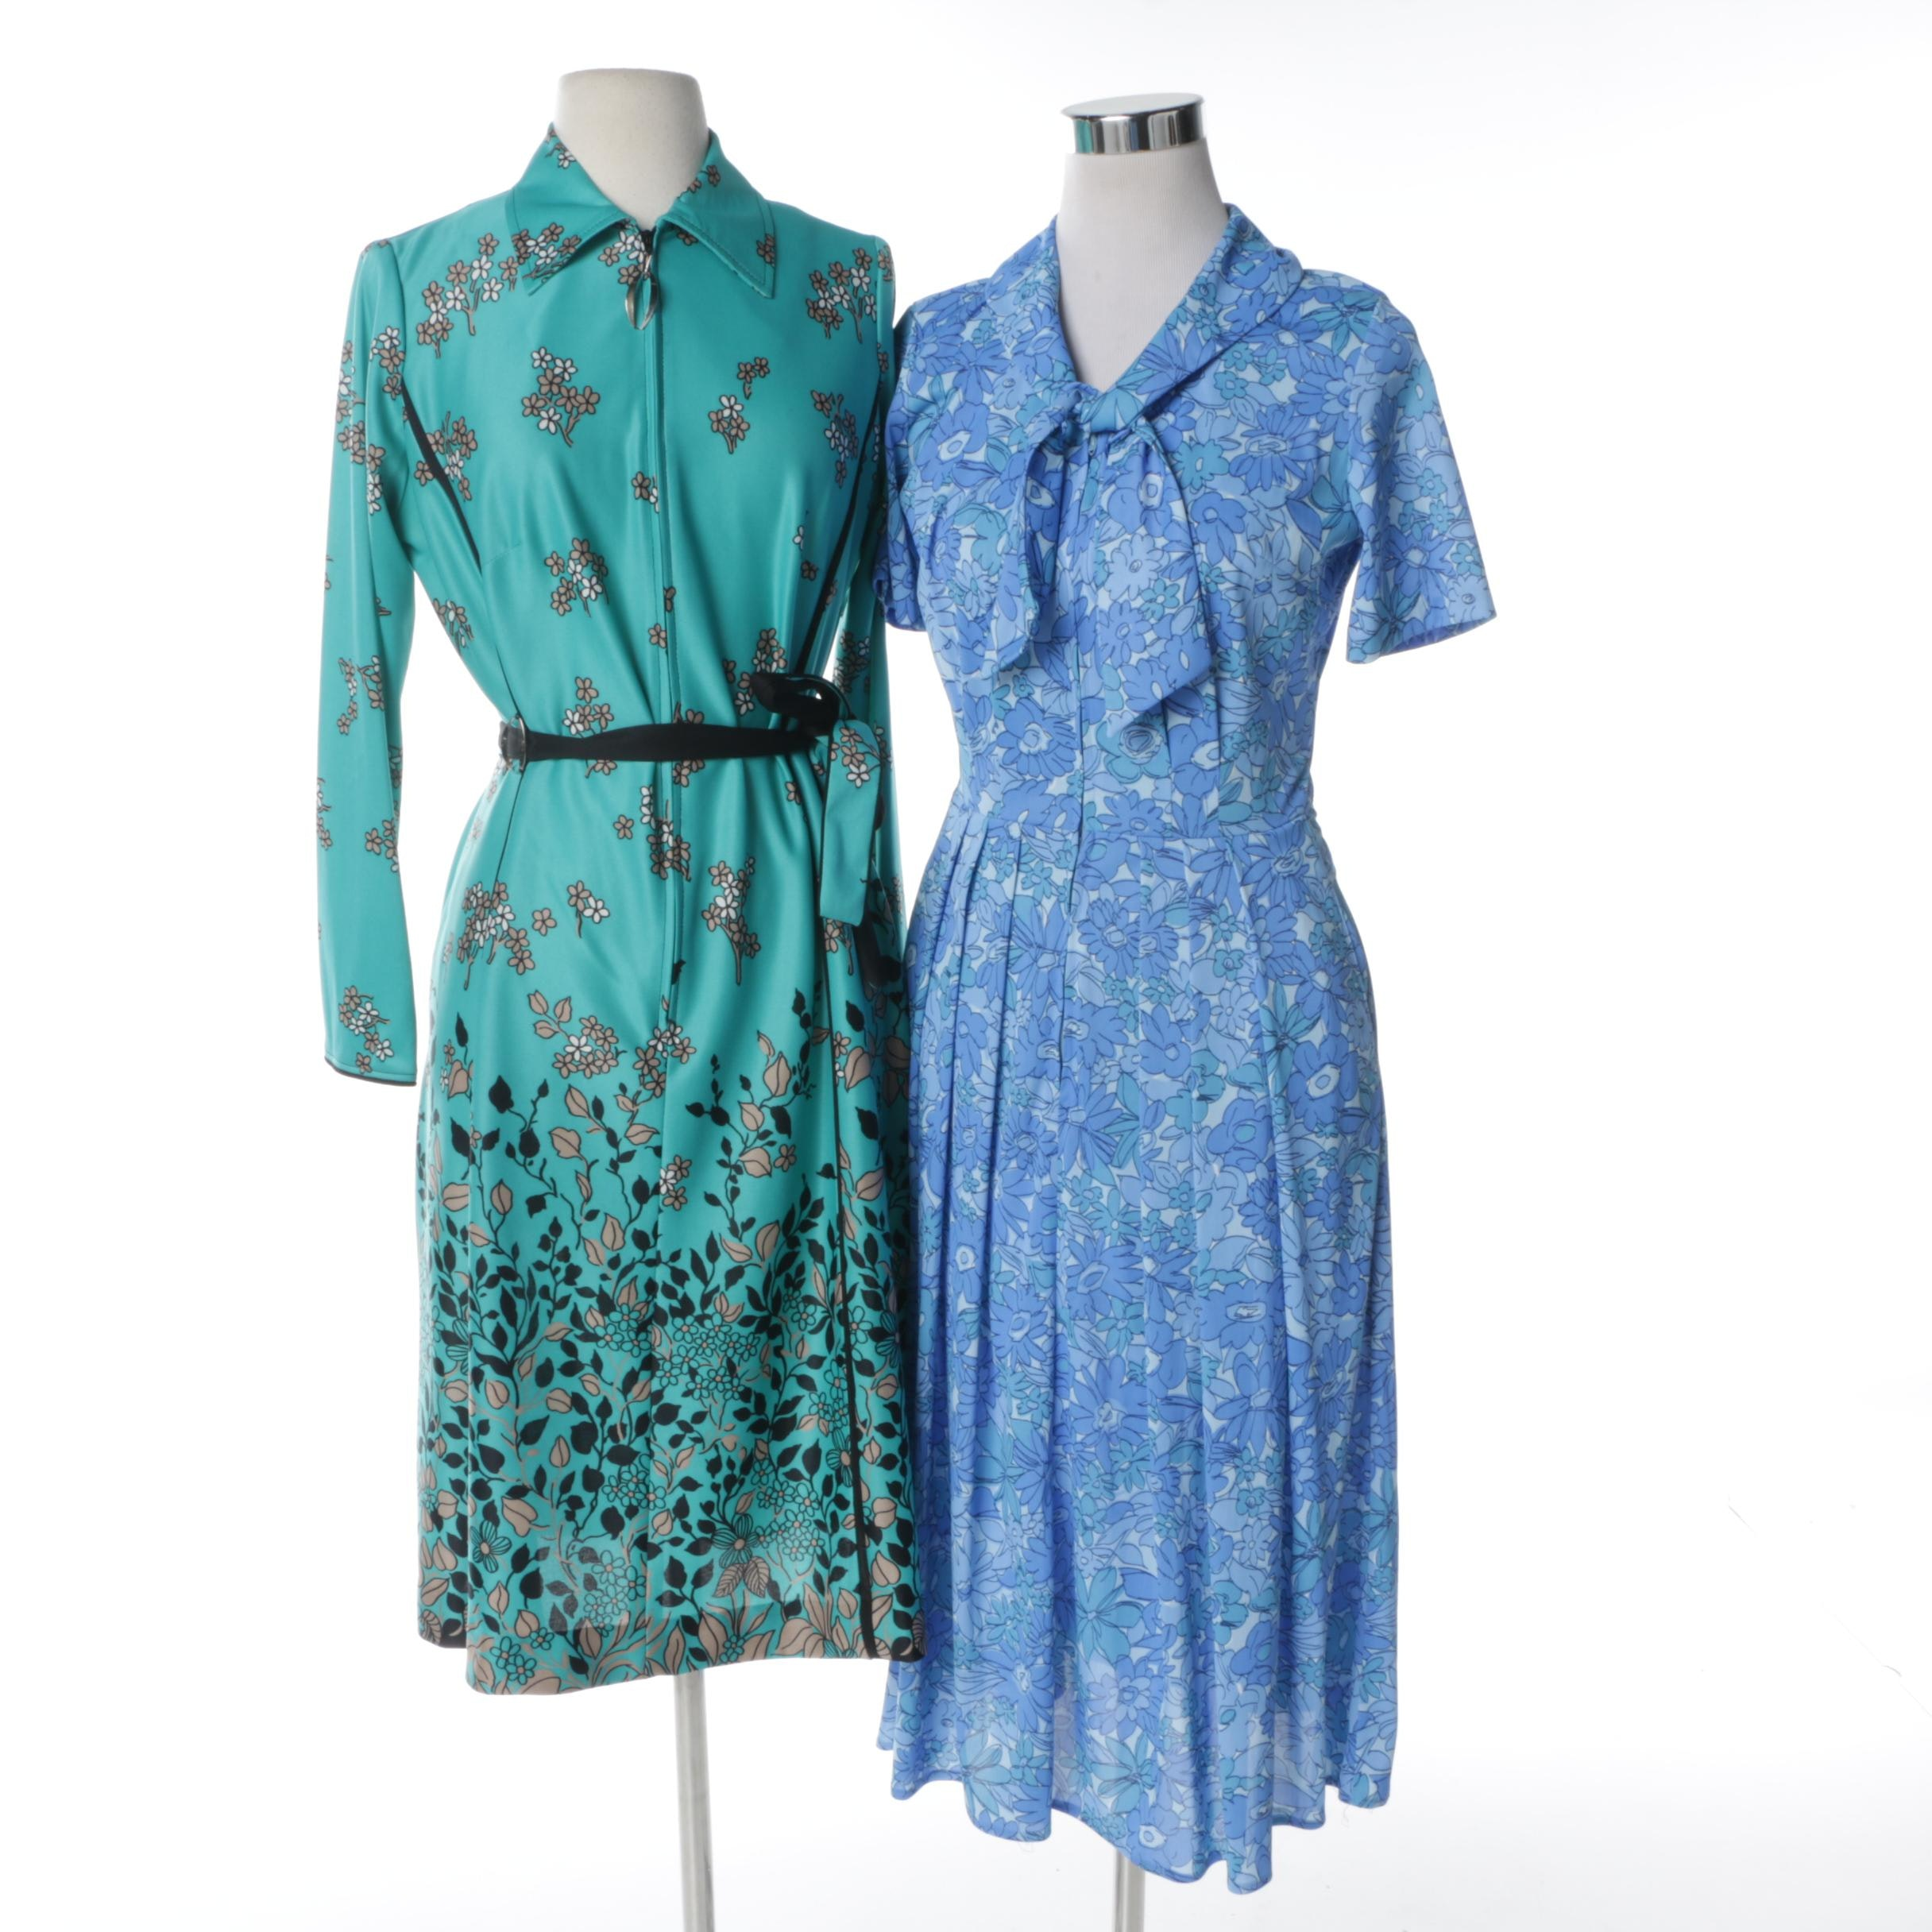 Vintage Floral Summer Dresses Including Shelton Stroller and Lorac Original